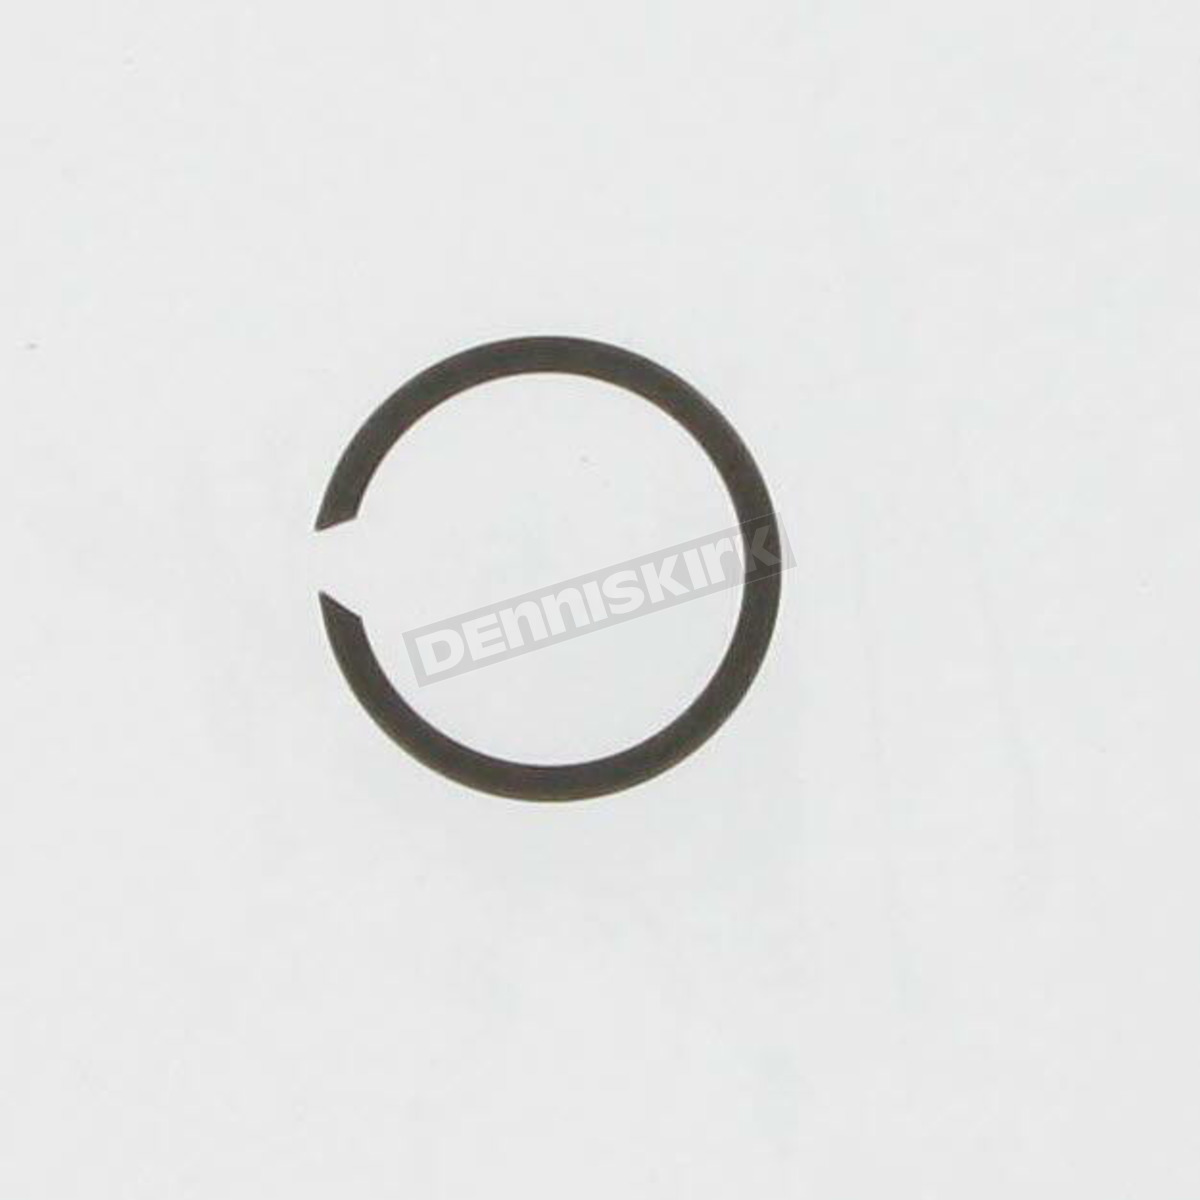 Eastern Motorcycle Parts 3rd Gear Retaining Ring For 4 Speed Sportster Transmissions